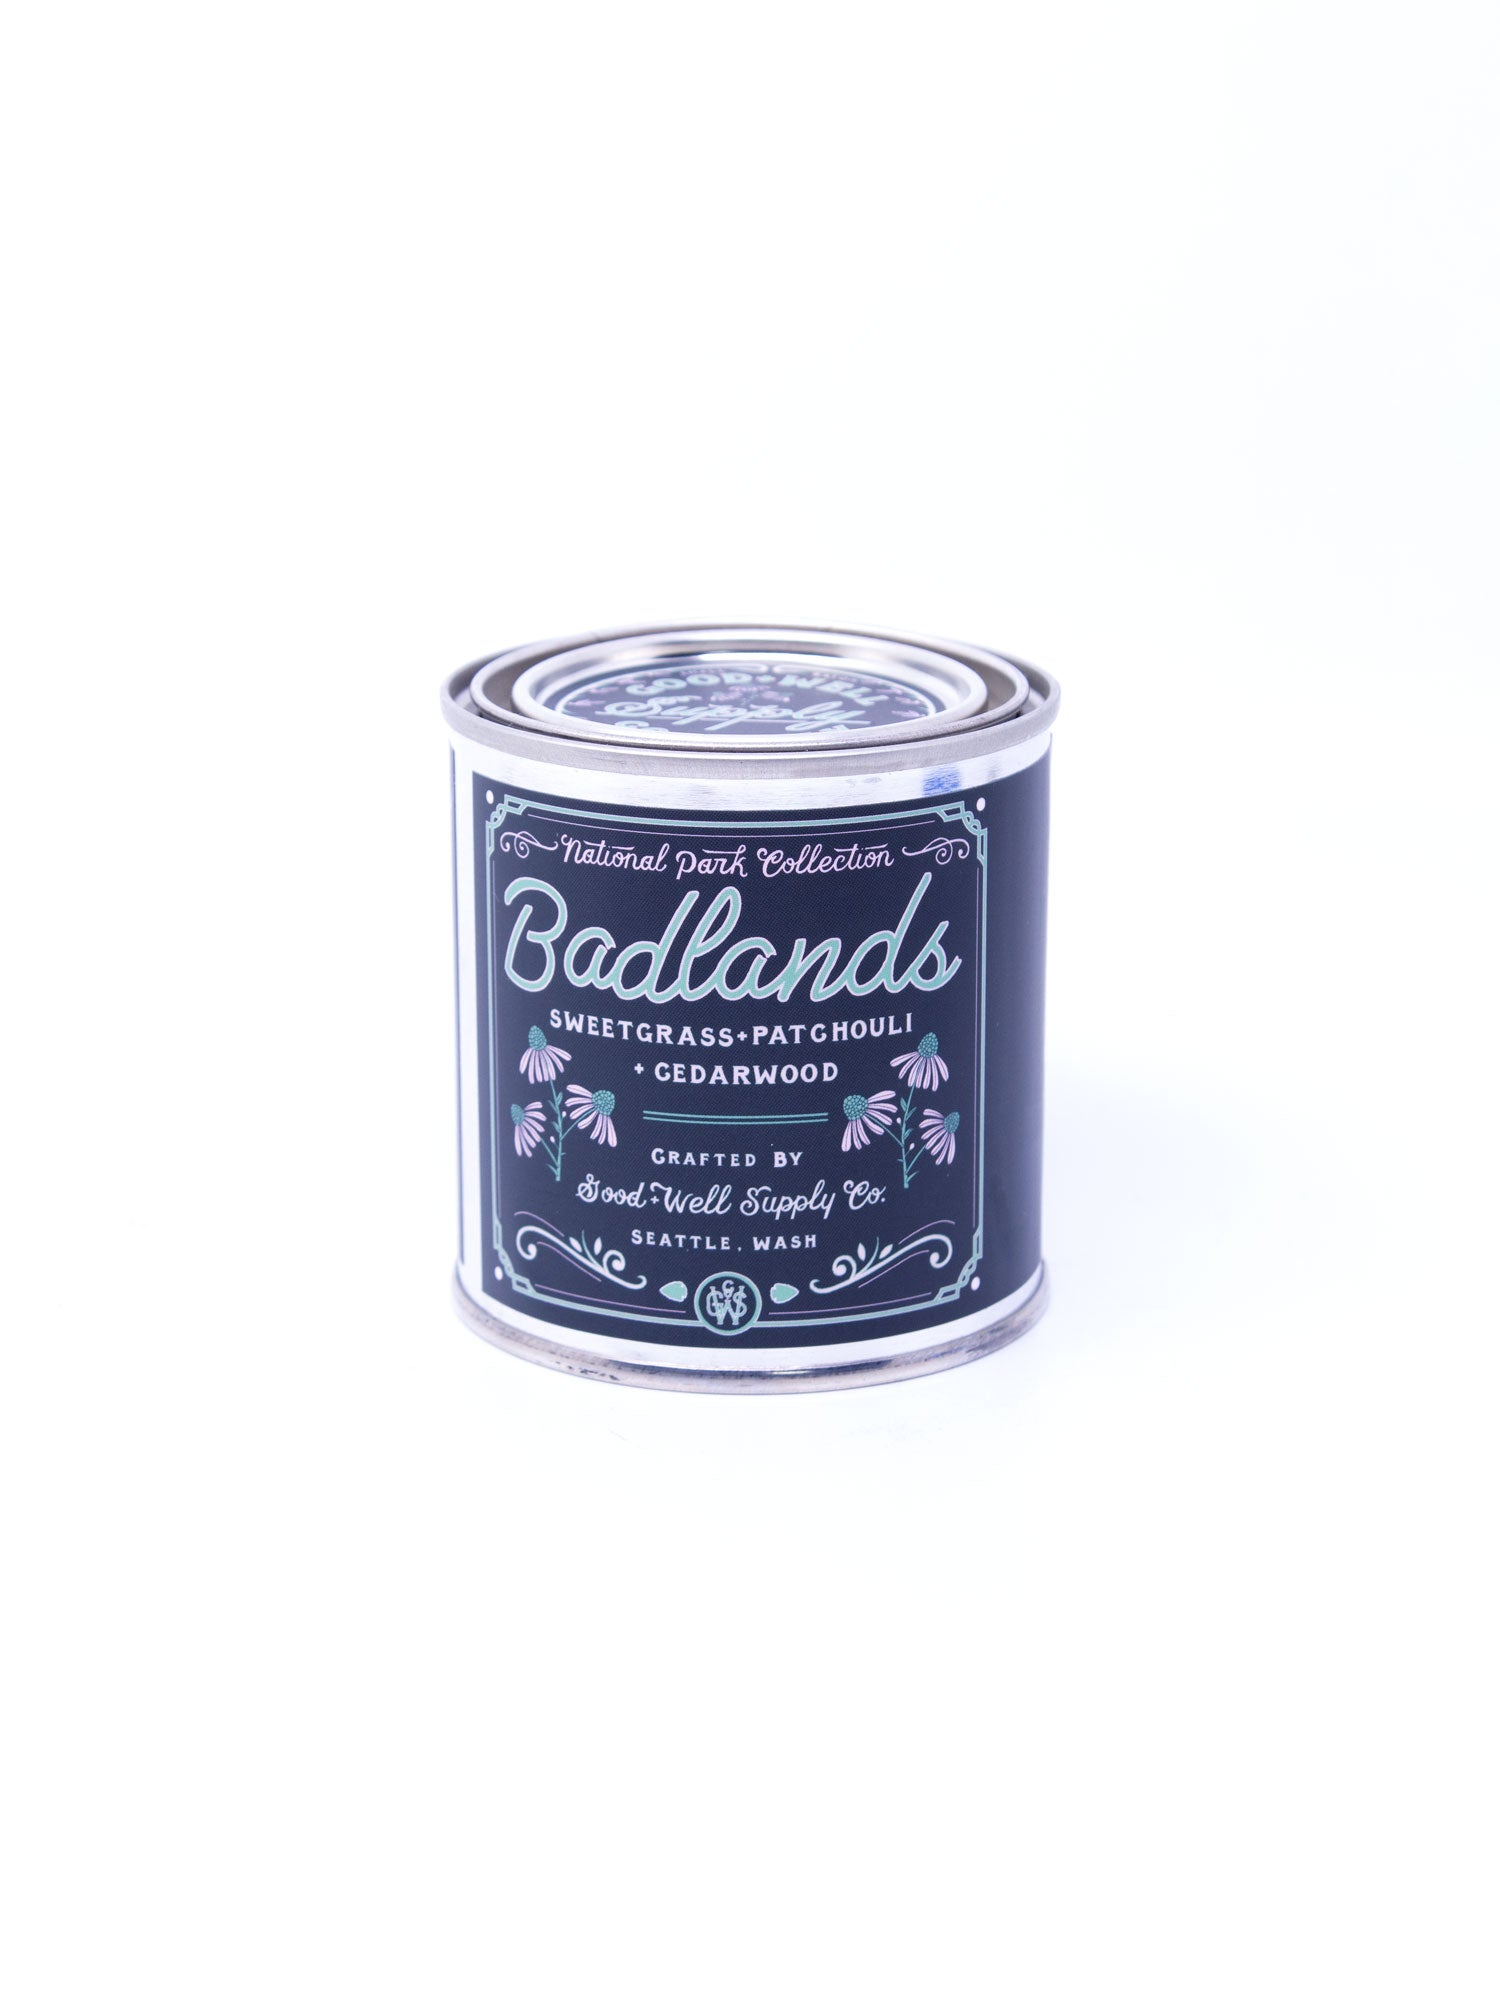 Good and Well Supply Co. Half Pint National Park Candle Badlands